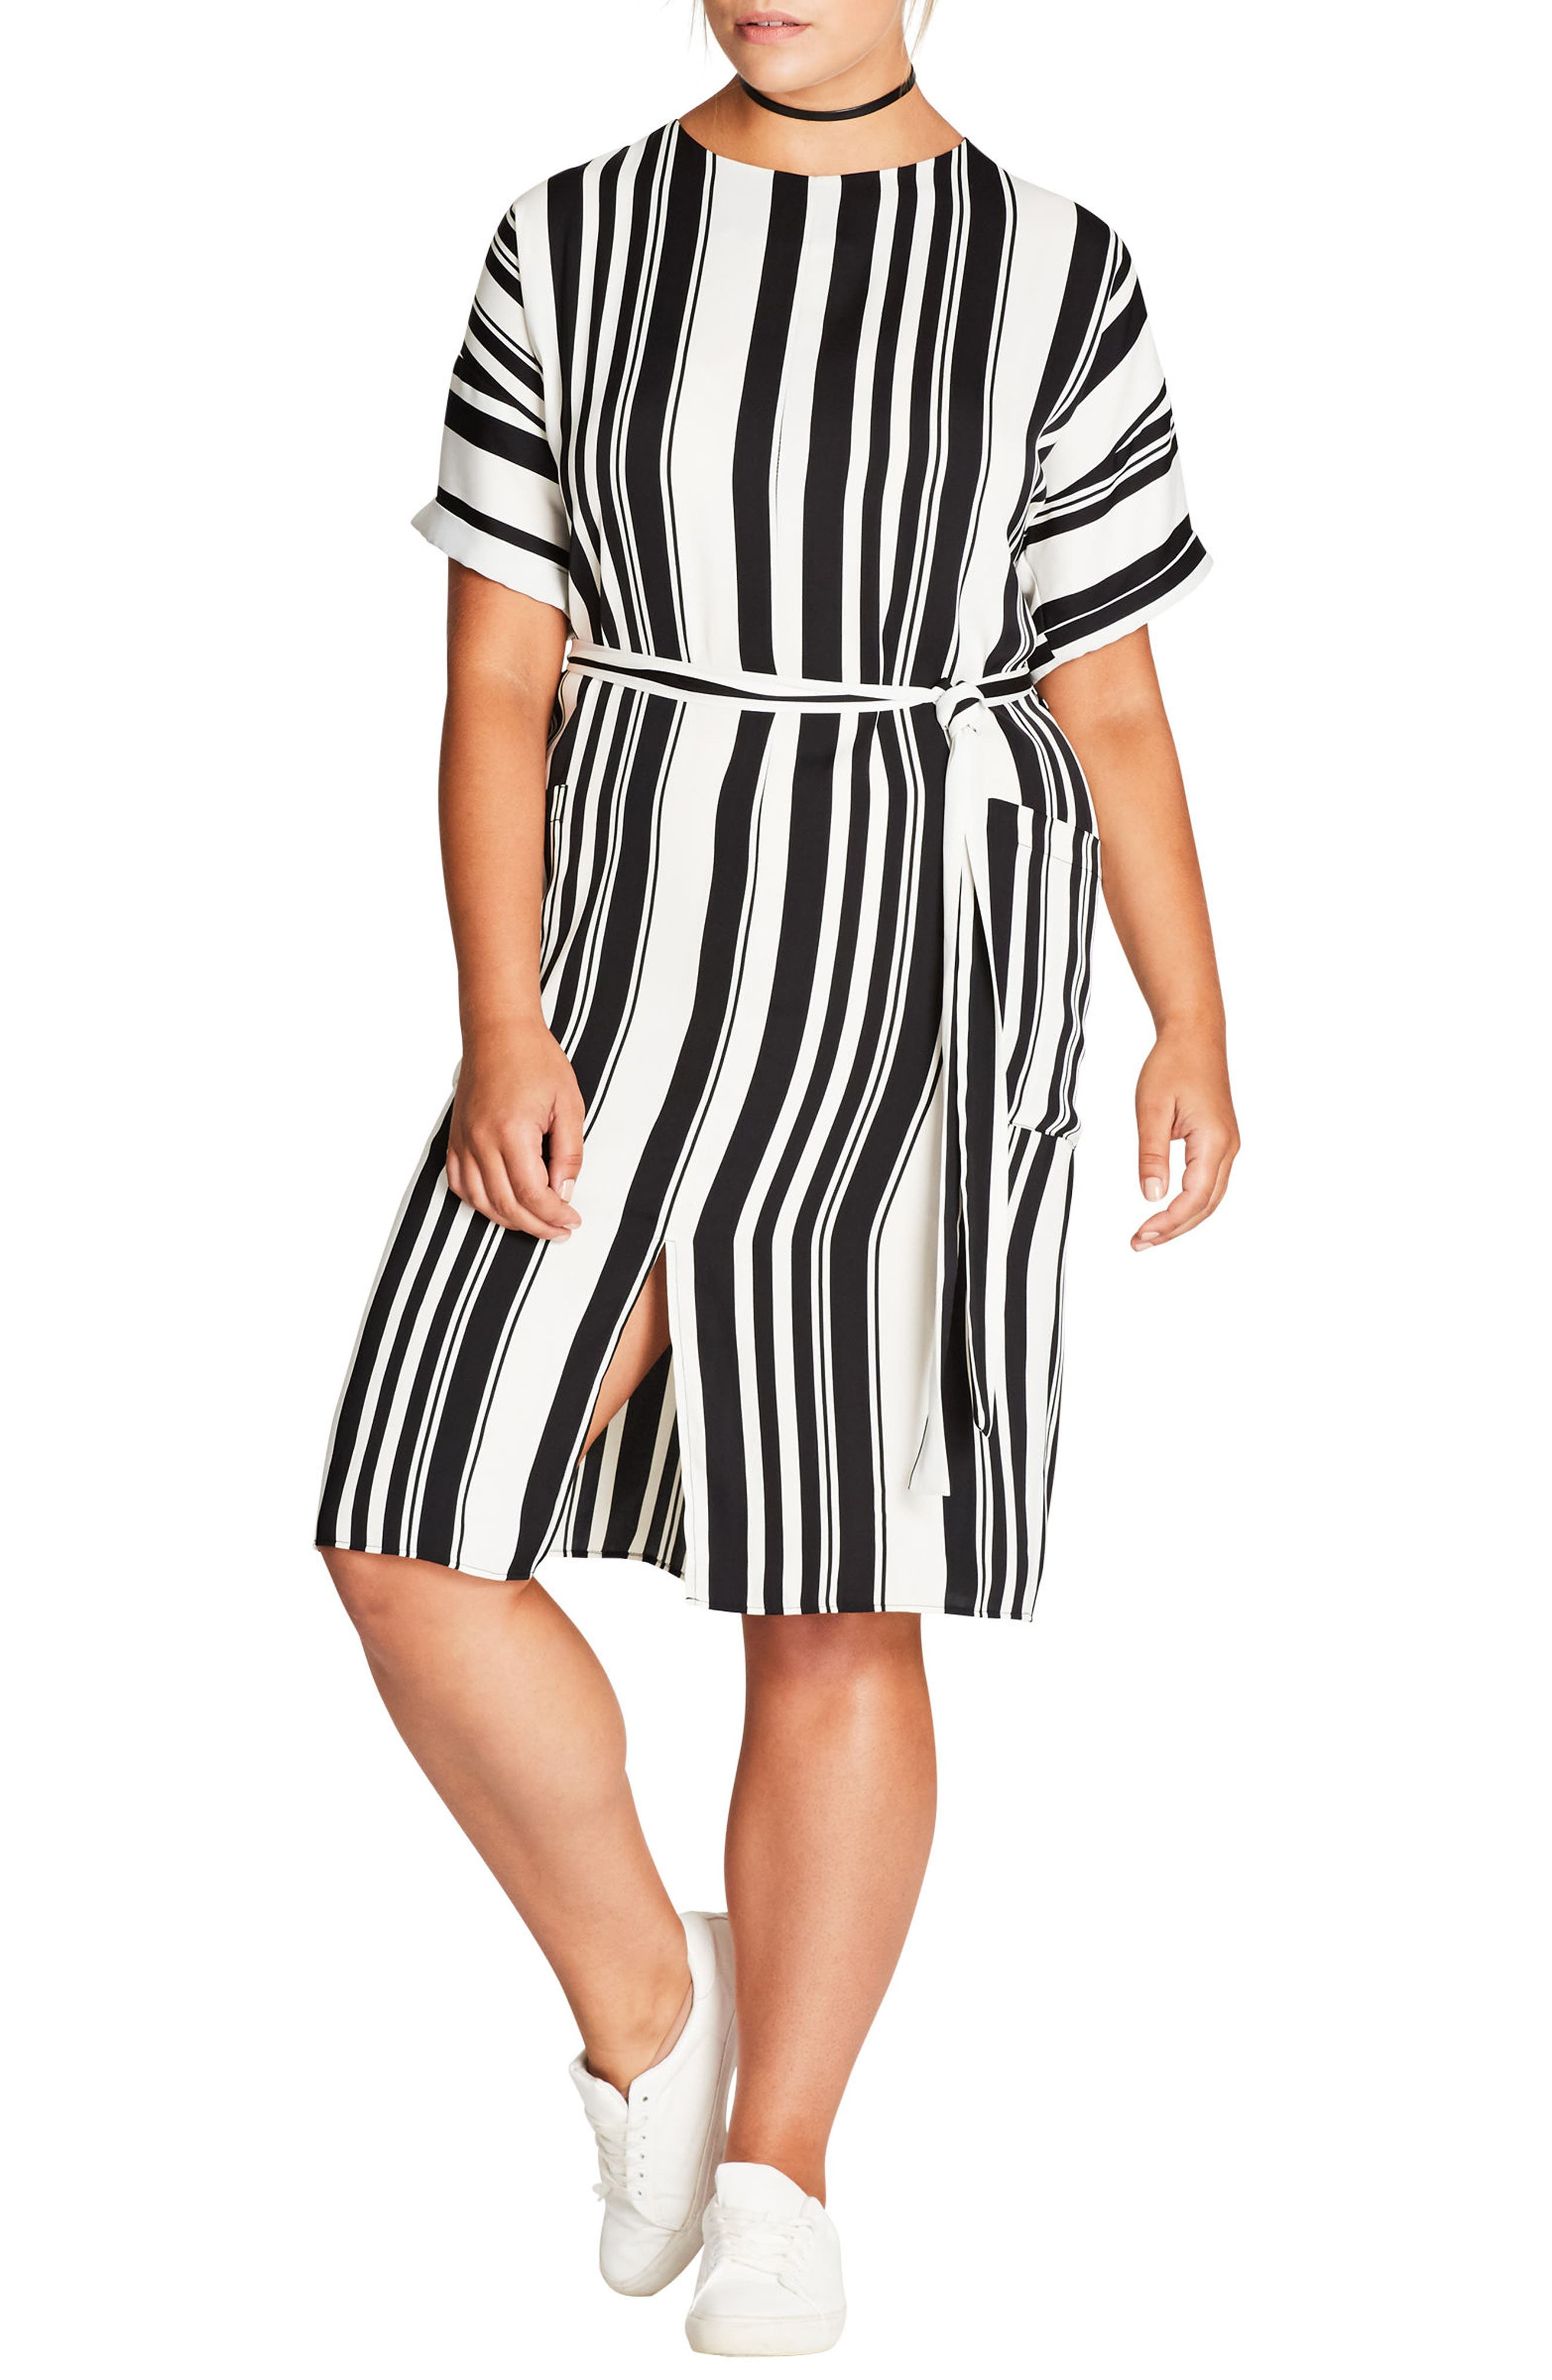 Alternate Image 1 Selected - City Chic Sexy Stripe Dress (Plus Size)